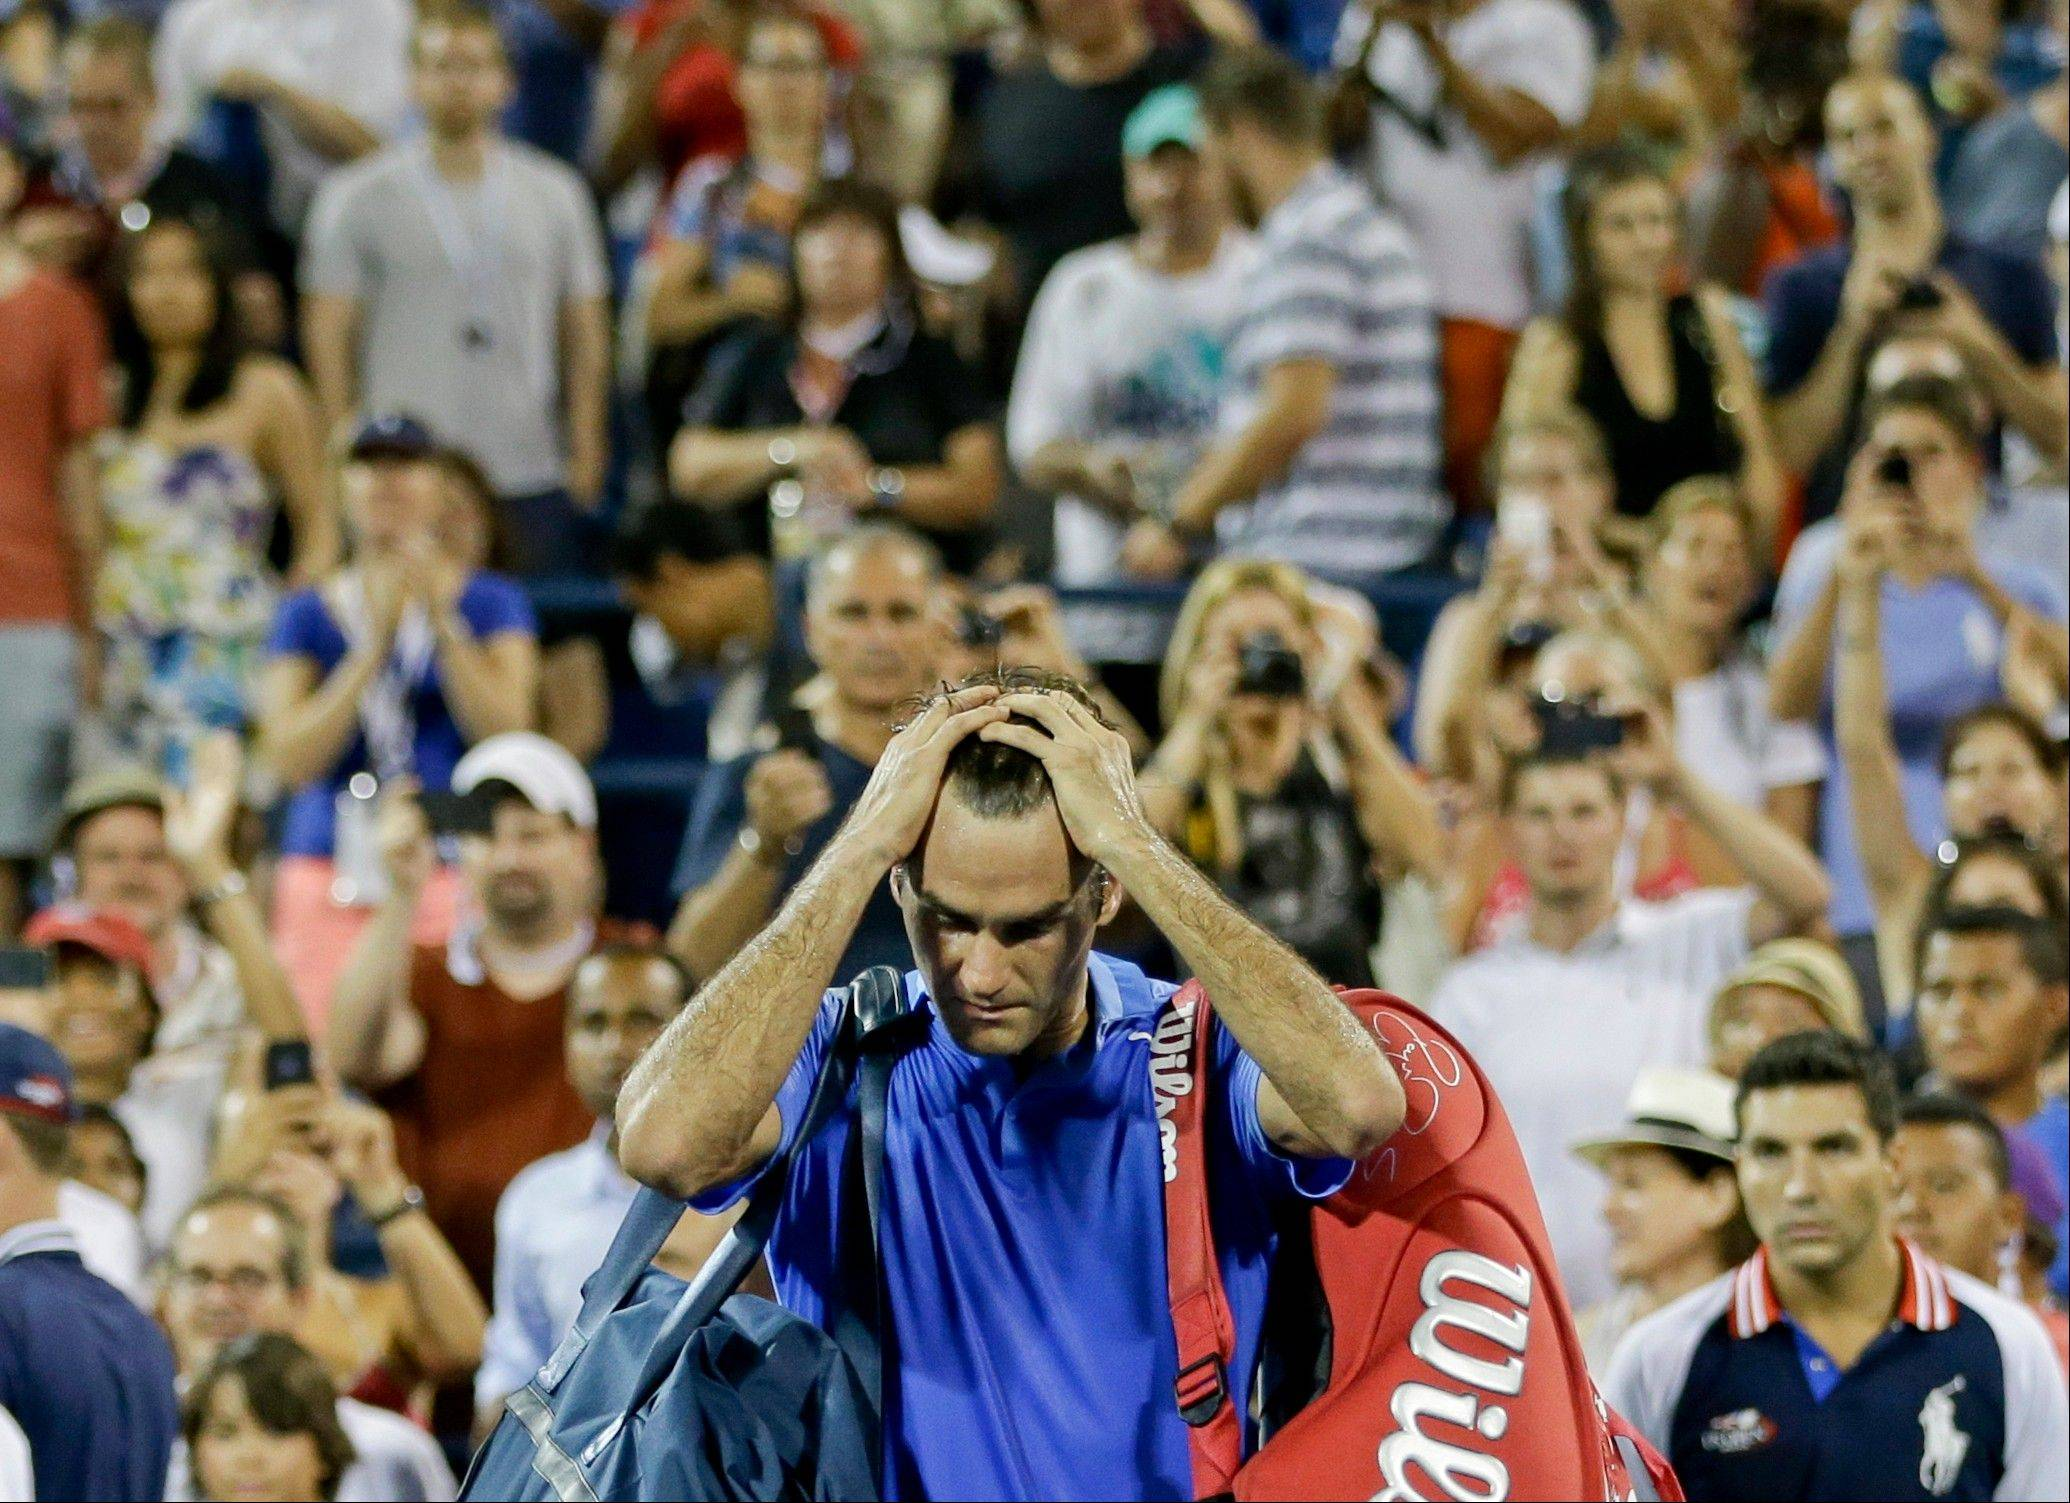 Roger Federer walks off the court after losing to Tommy Robredo on Monday during the fourth round of the U.S. Open in New York.